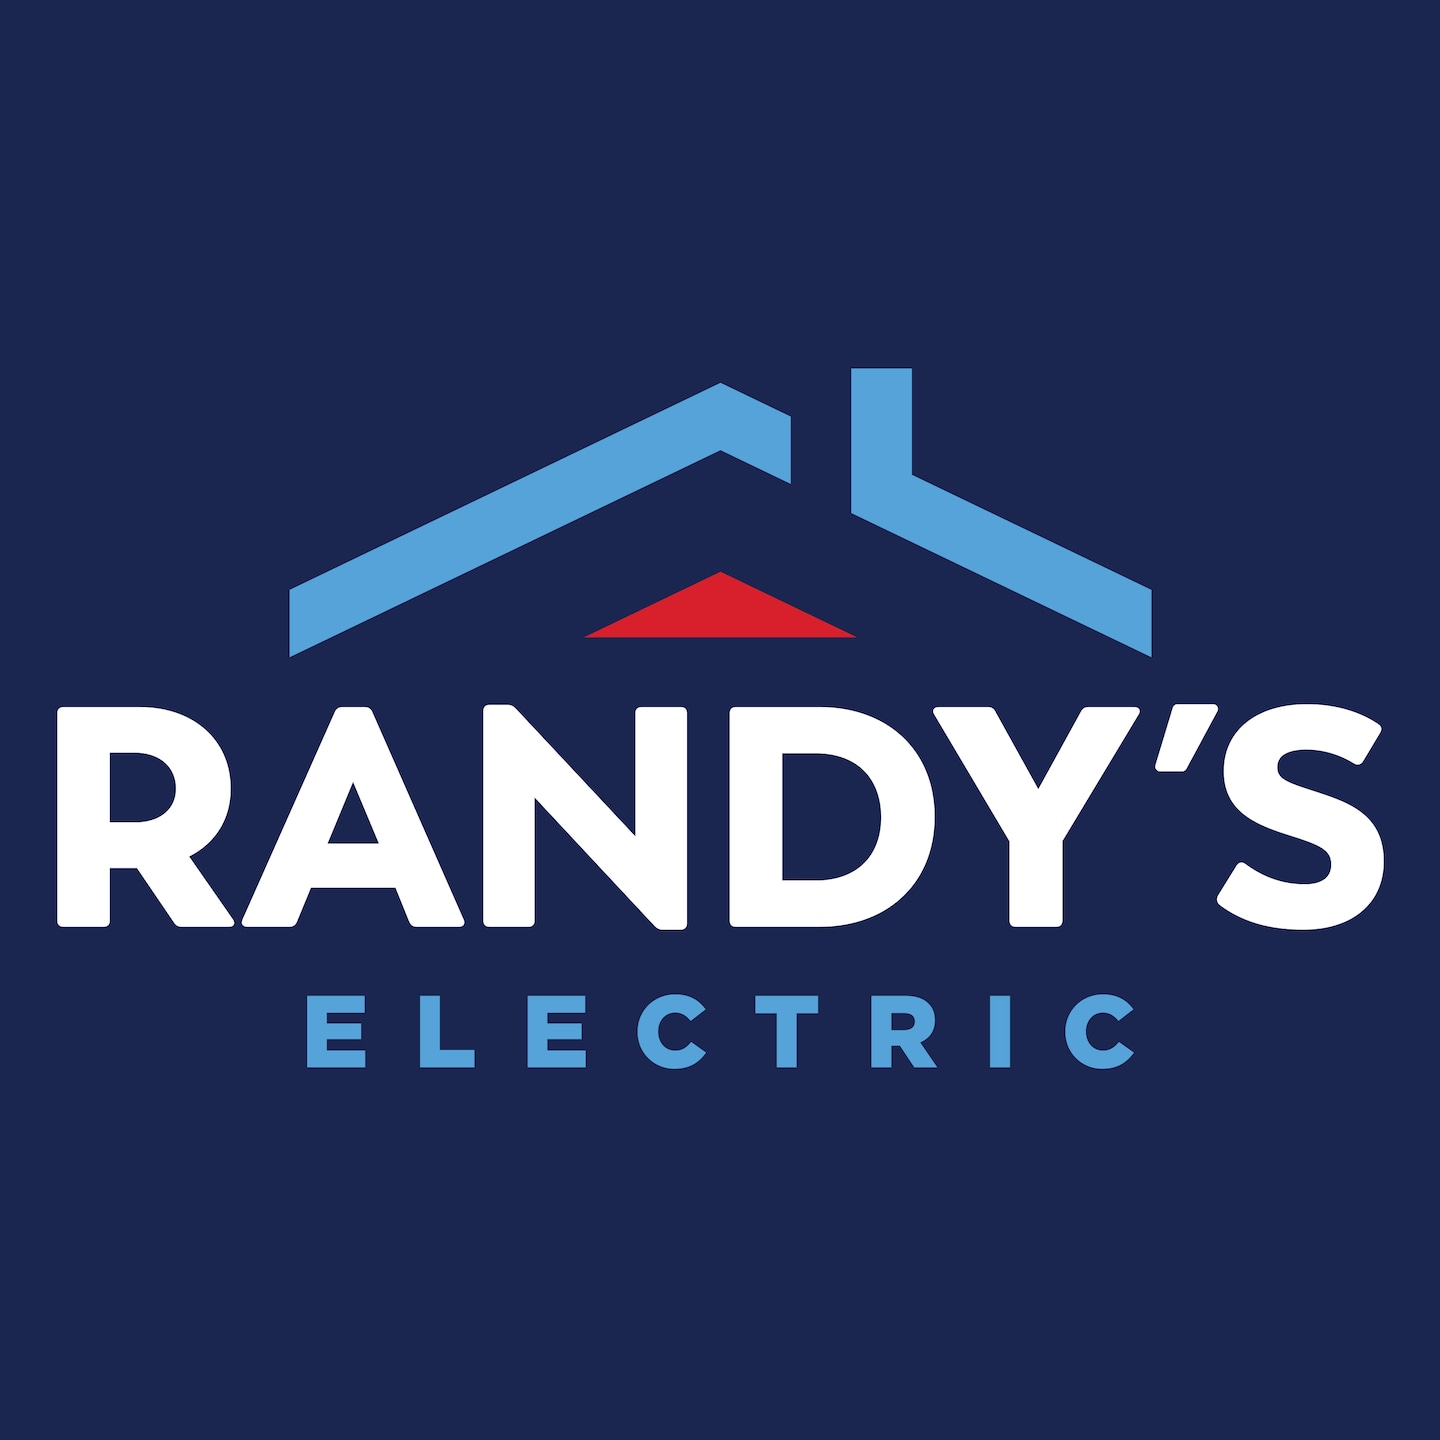 Randy's Electric logo